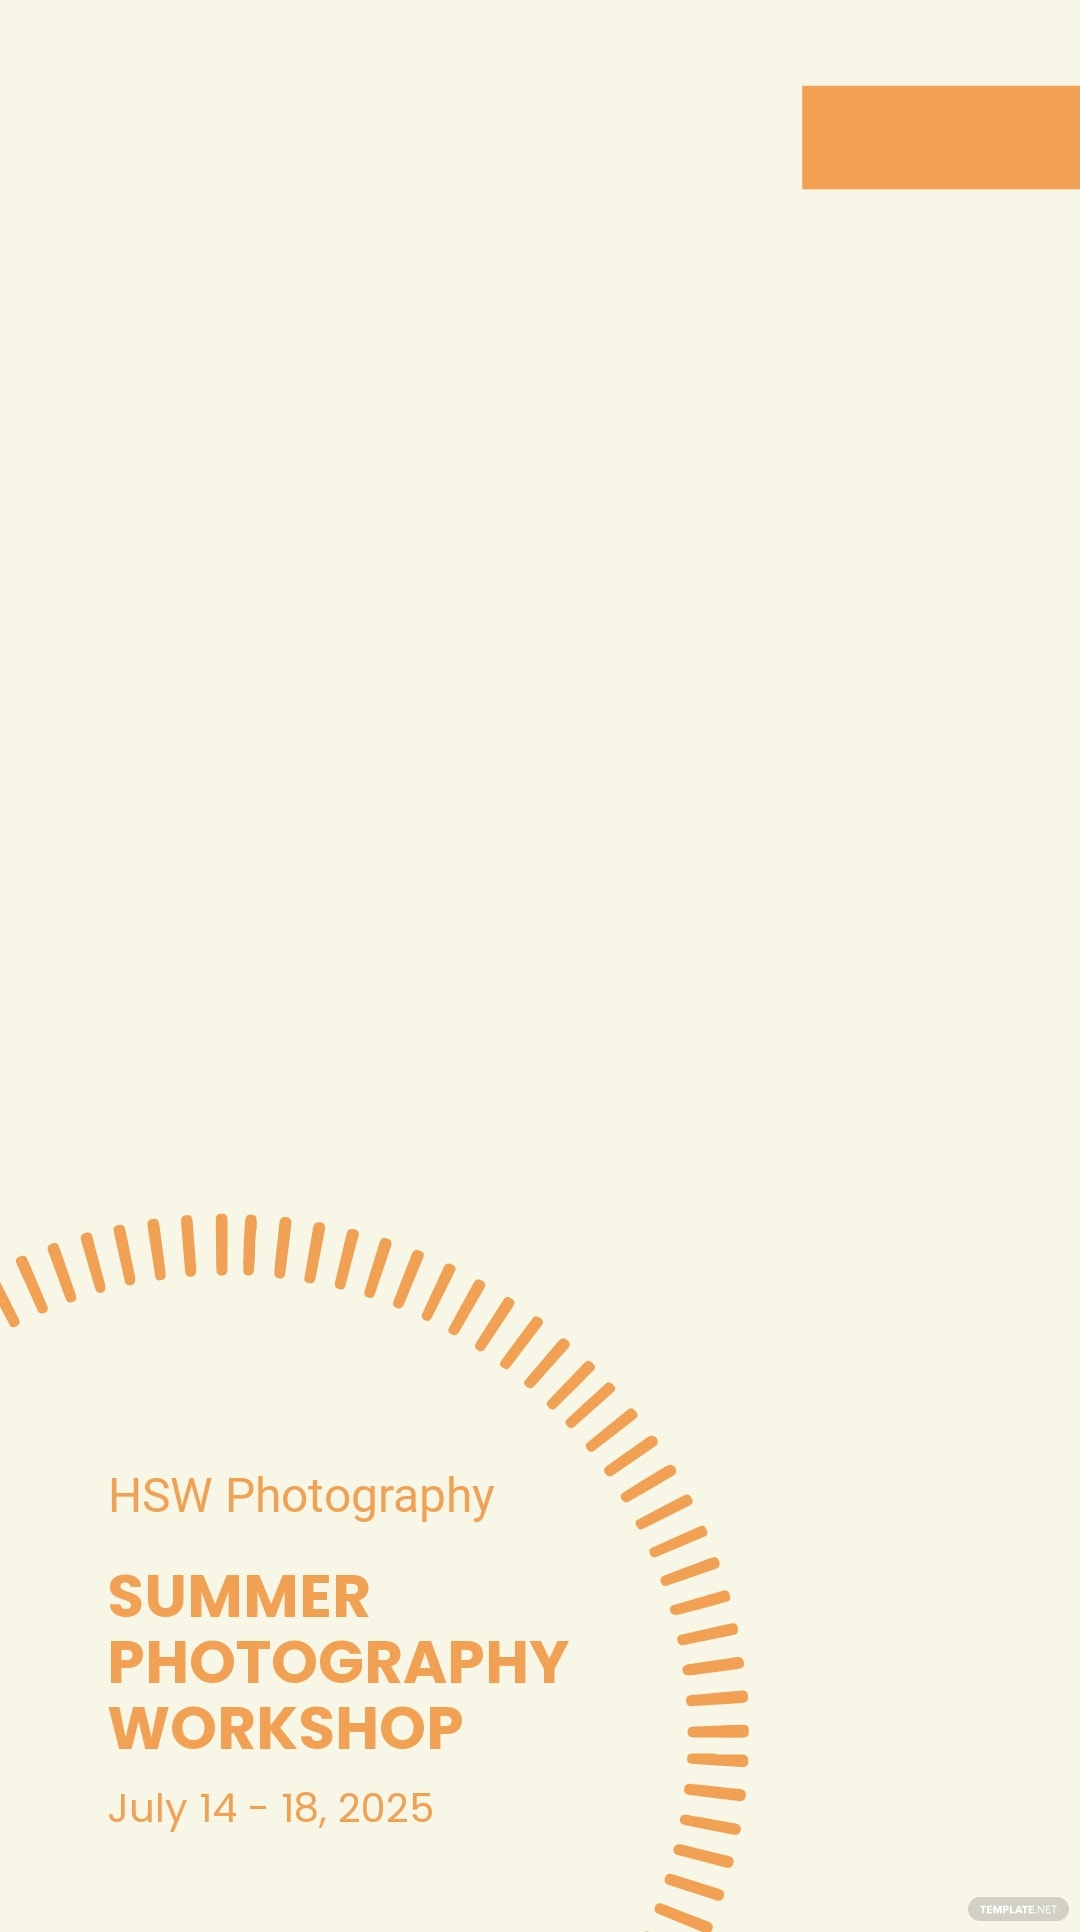 Photography Workshop Snapchat Geofilter Template.jpe